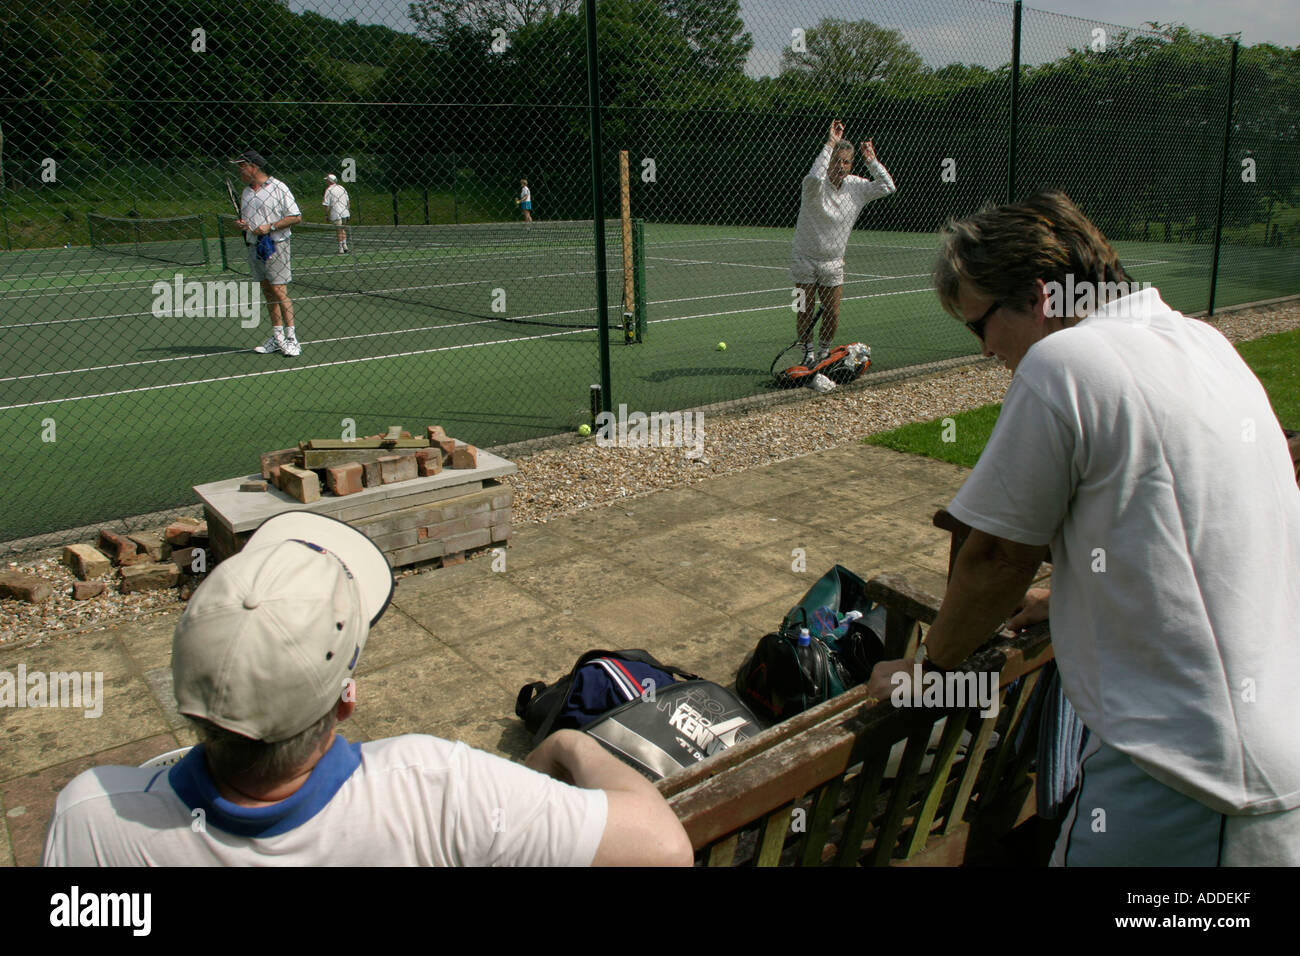 Tennis club meet frequently at the courts beside the Hambleden's playing fields. - Stock Image